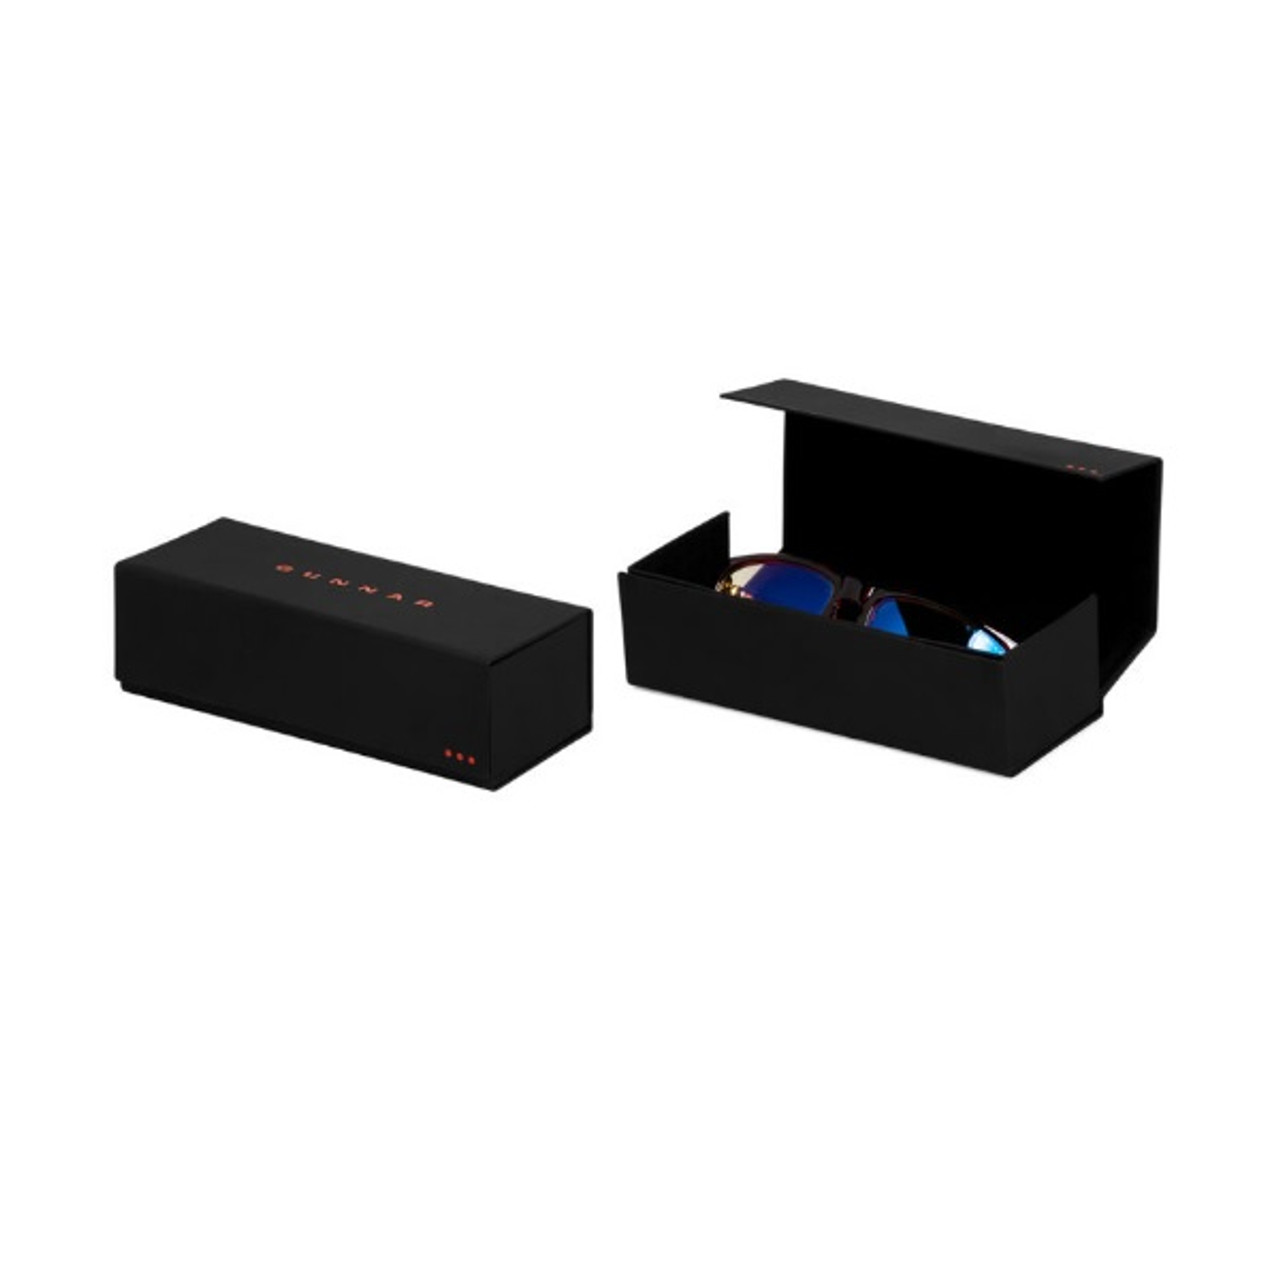 Product image for Gunnar Crush Resistant Travel Case For Digital Eyewear | CX Computer Superstore